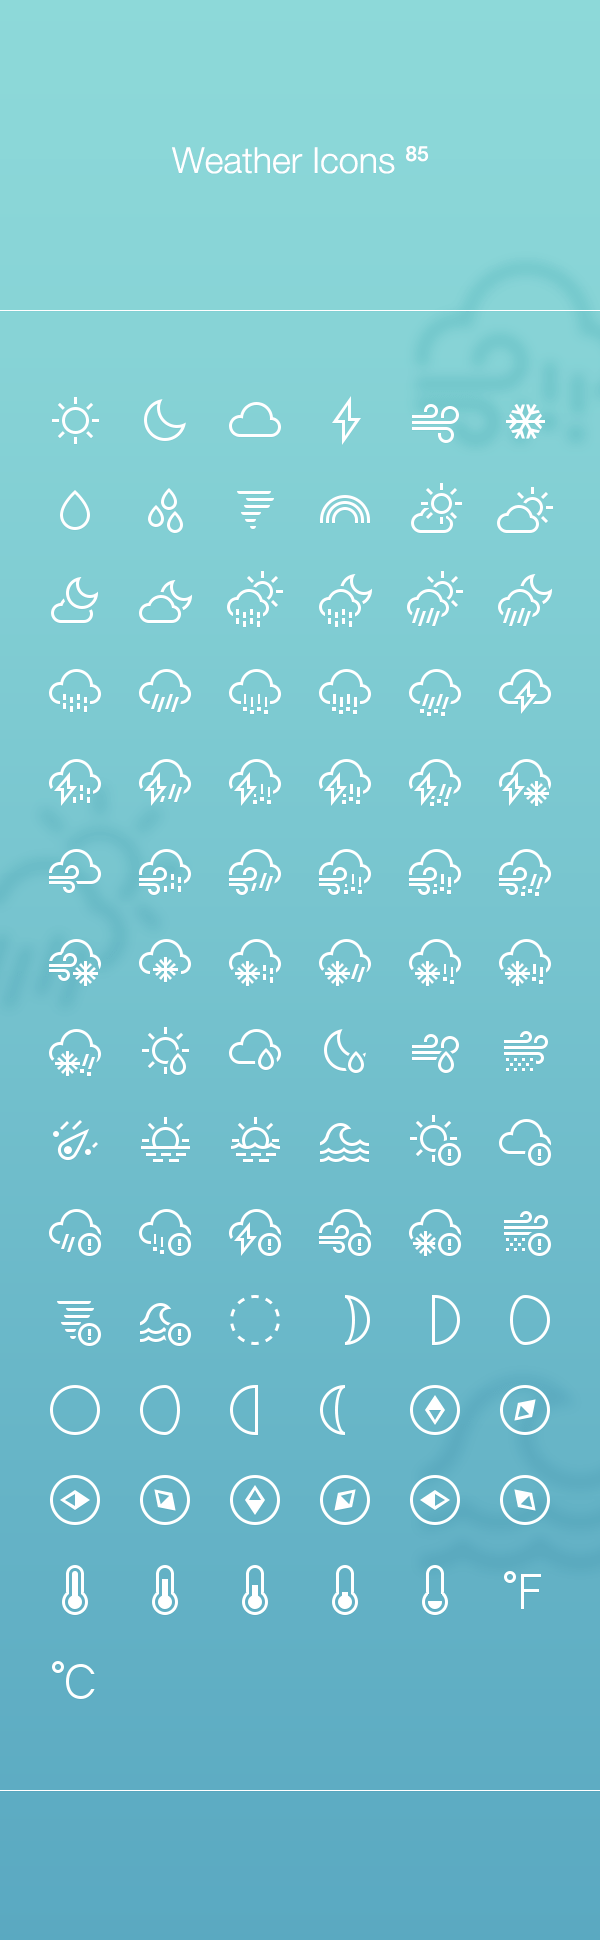 85 FREE Weather Icons